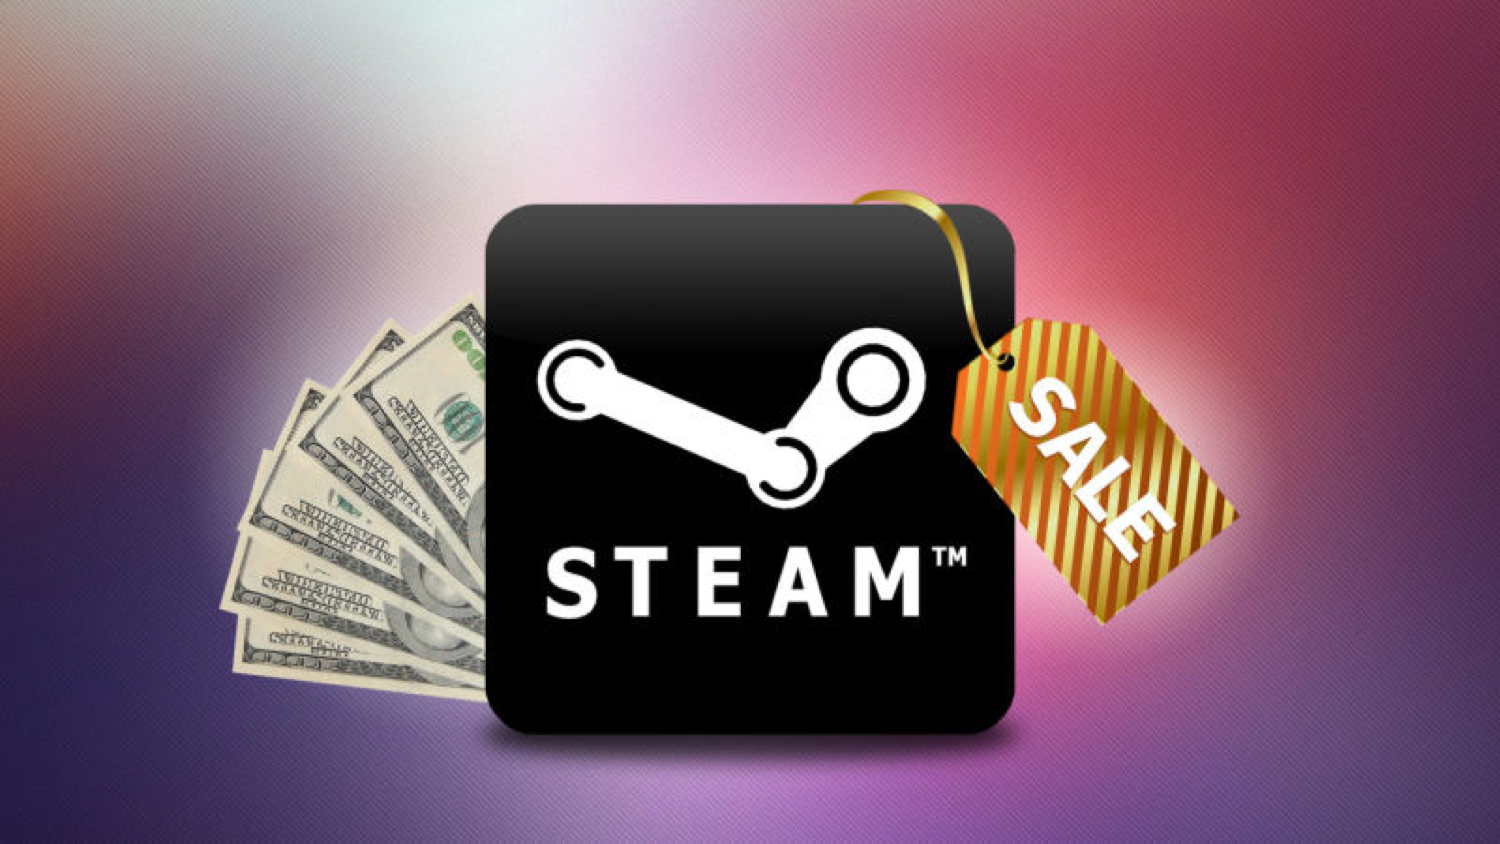 Steam Taking Sales by Storm...From Amazon